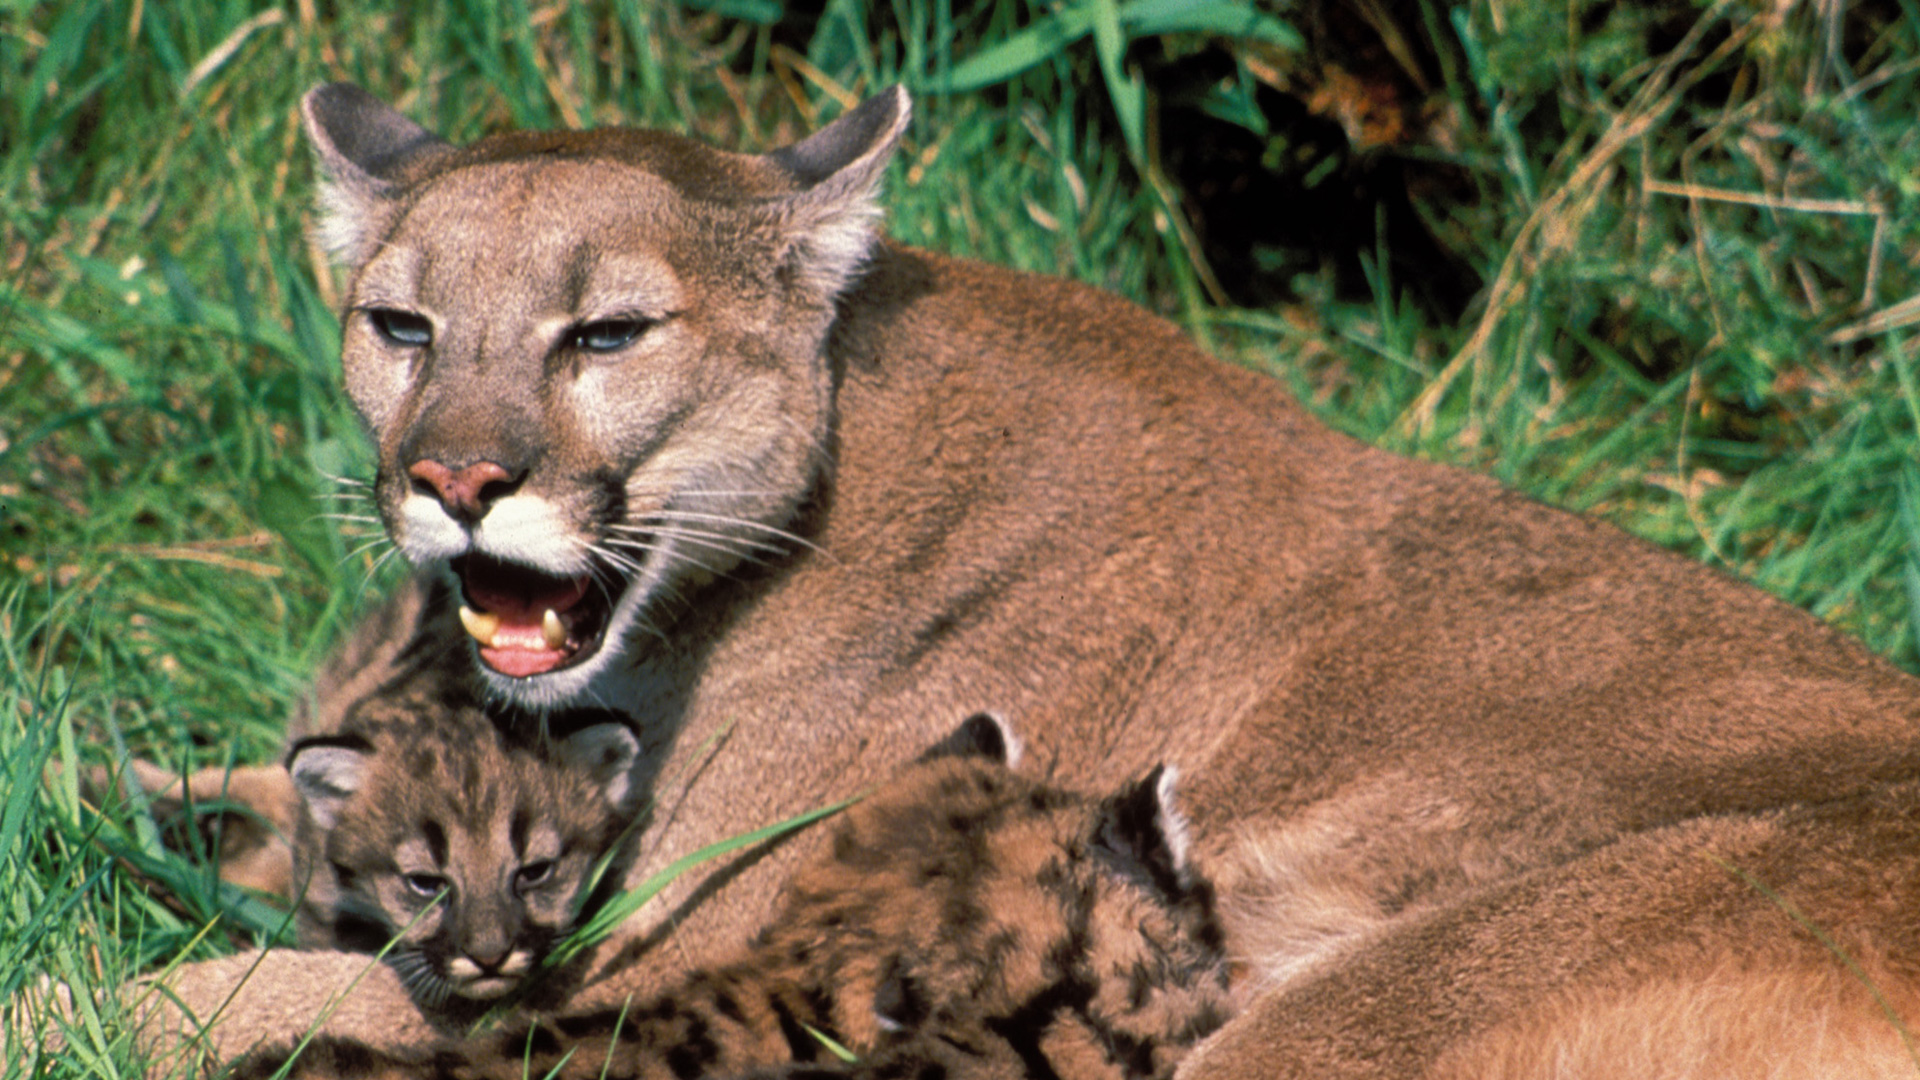 Trail of the Cougar | About | Nature | PBS